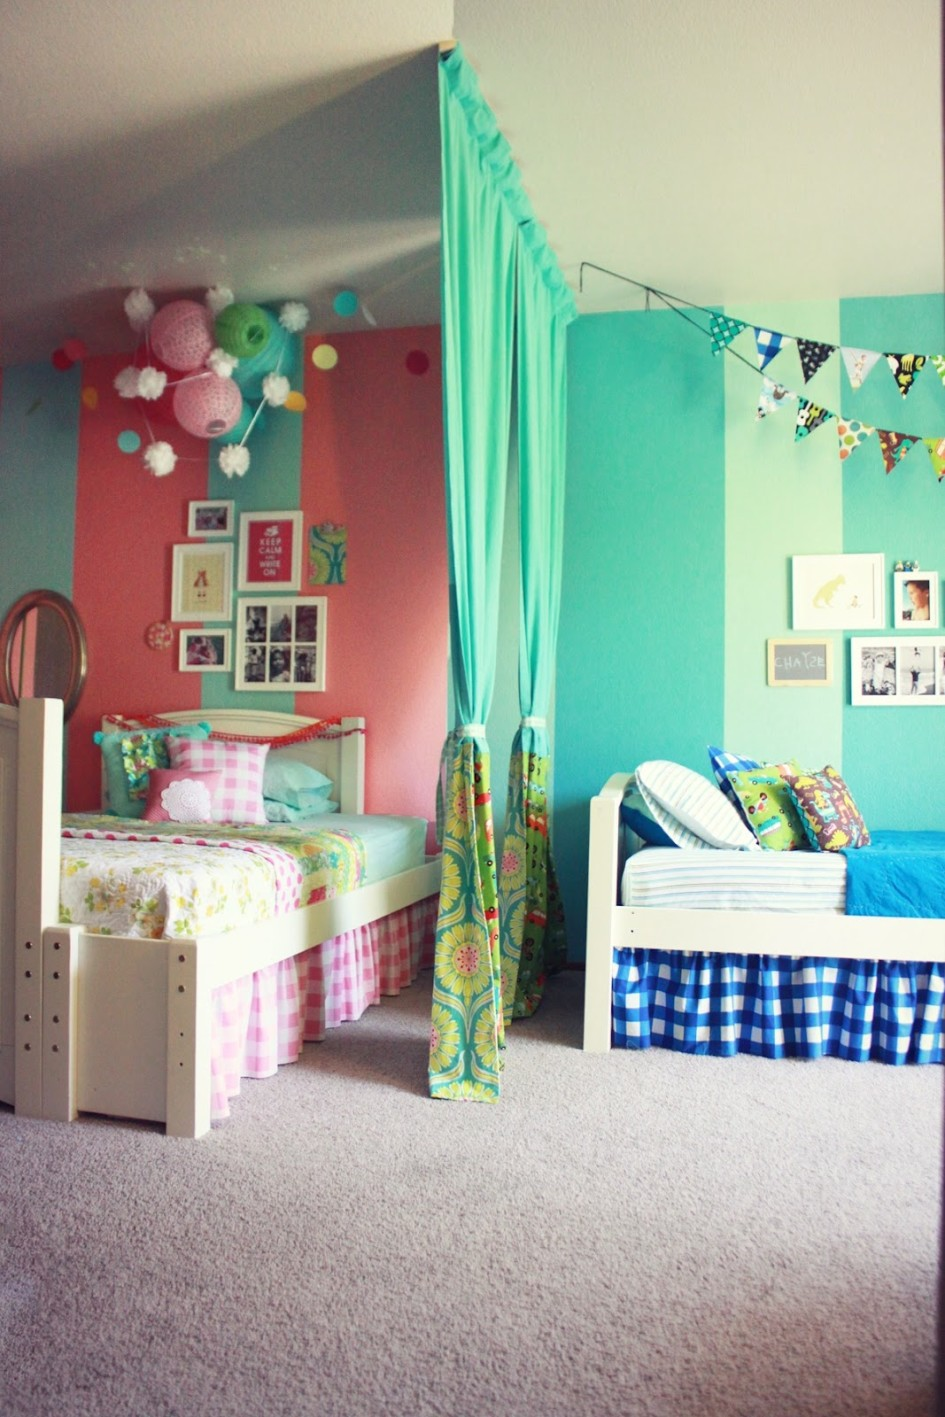 10 Creative Bedrooms For Kids To Share